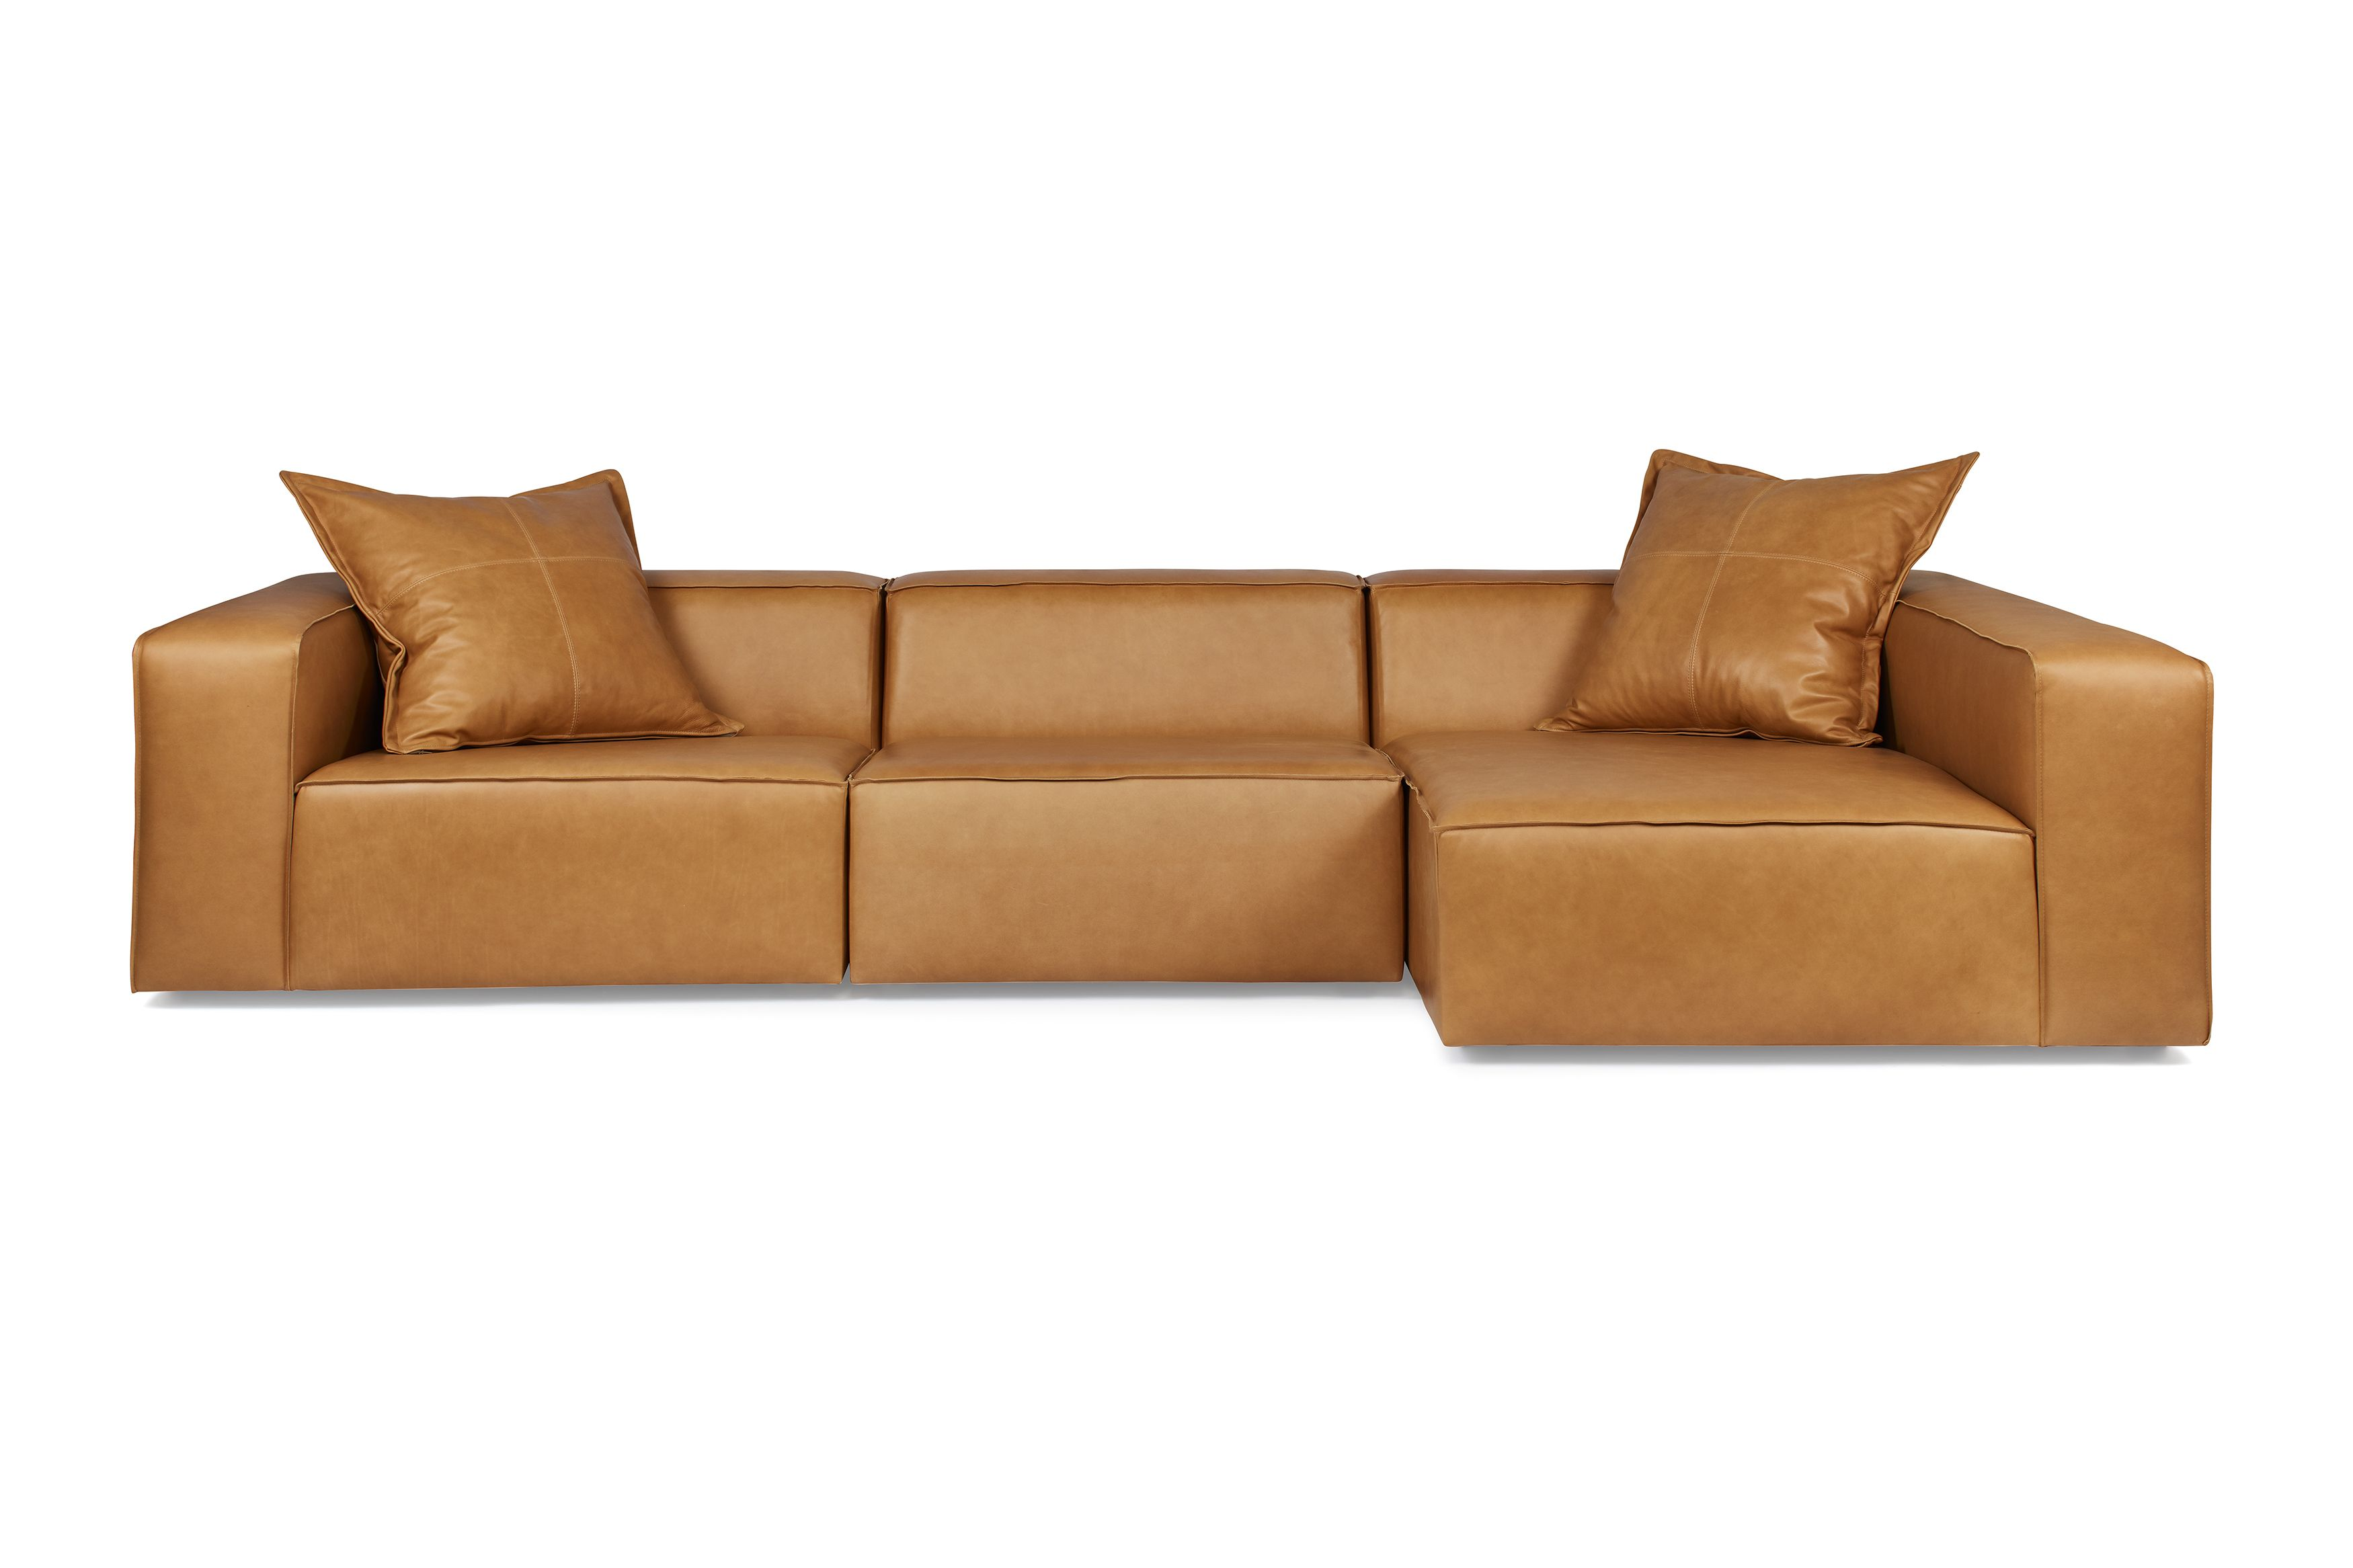 Soho Living Style Sofa Manufacturer In Singapore Sofa Supplier In Singapore Sofa Dealer In Singapore Sofa Ma Sofa Manufacturers Leather Sofa Living Styles